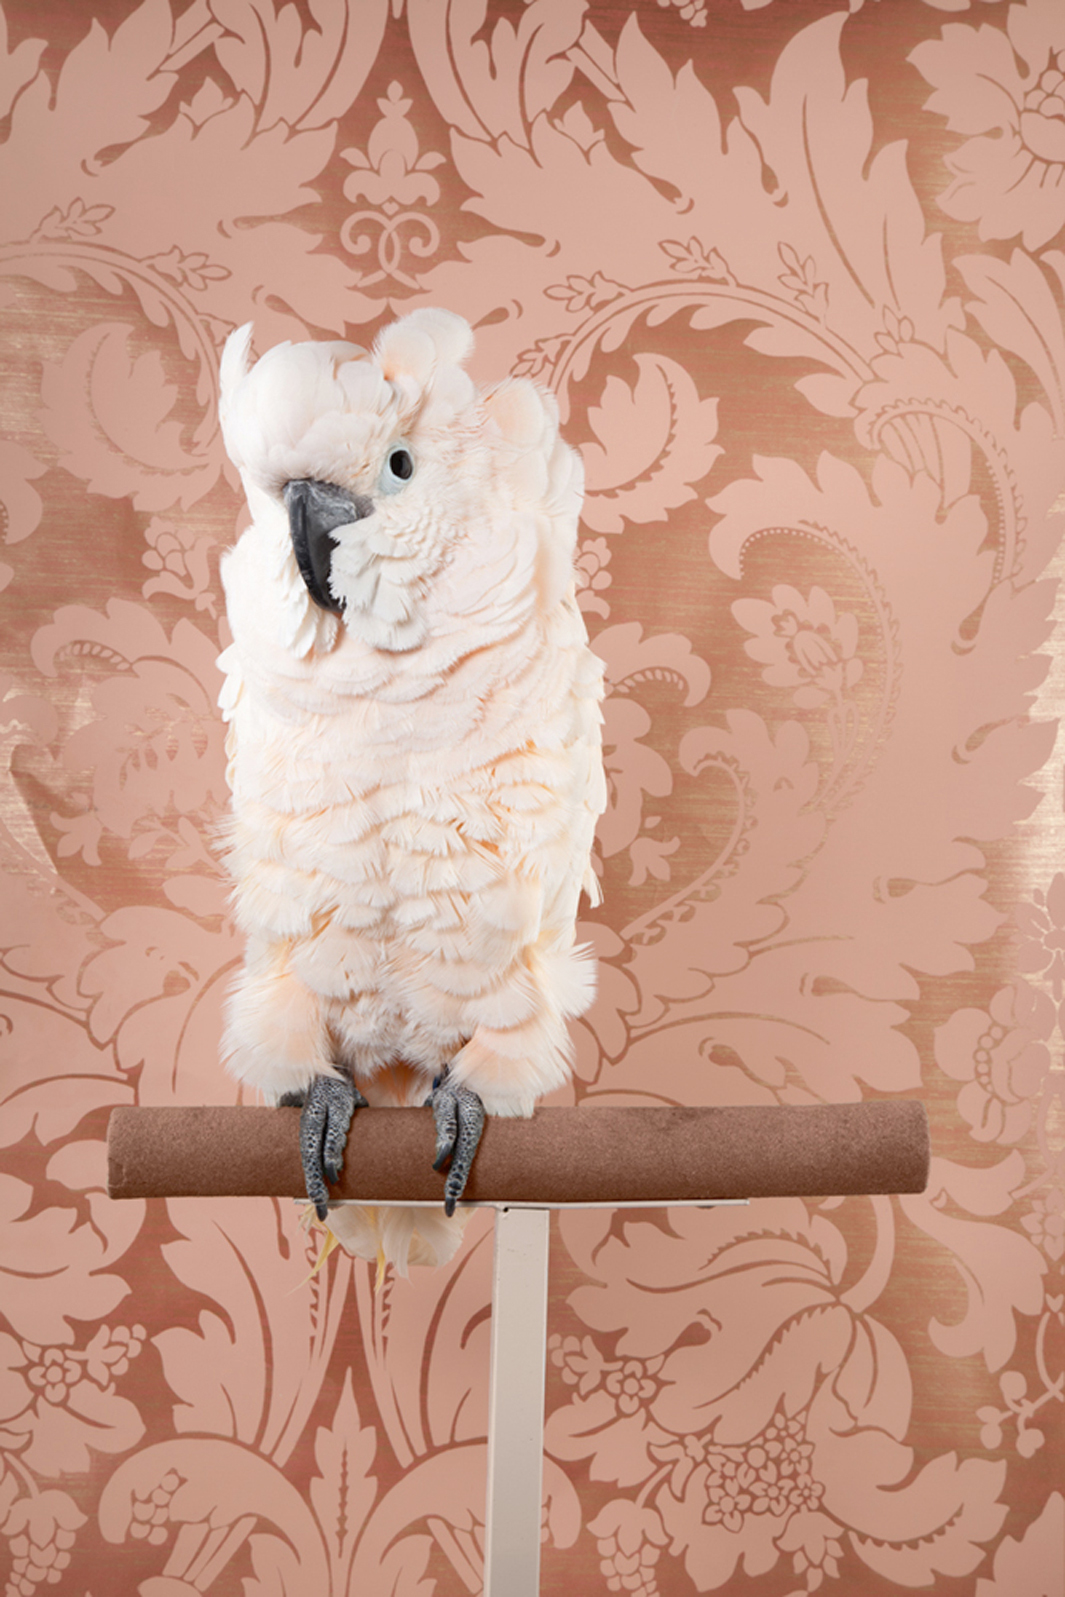 Claire Rosen | Moluccan Cockatoo in front of a Vintage Wallpaper